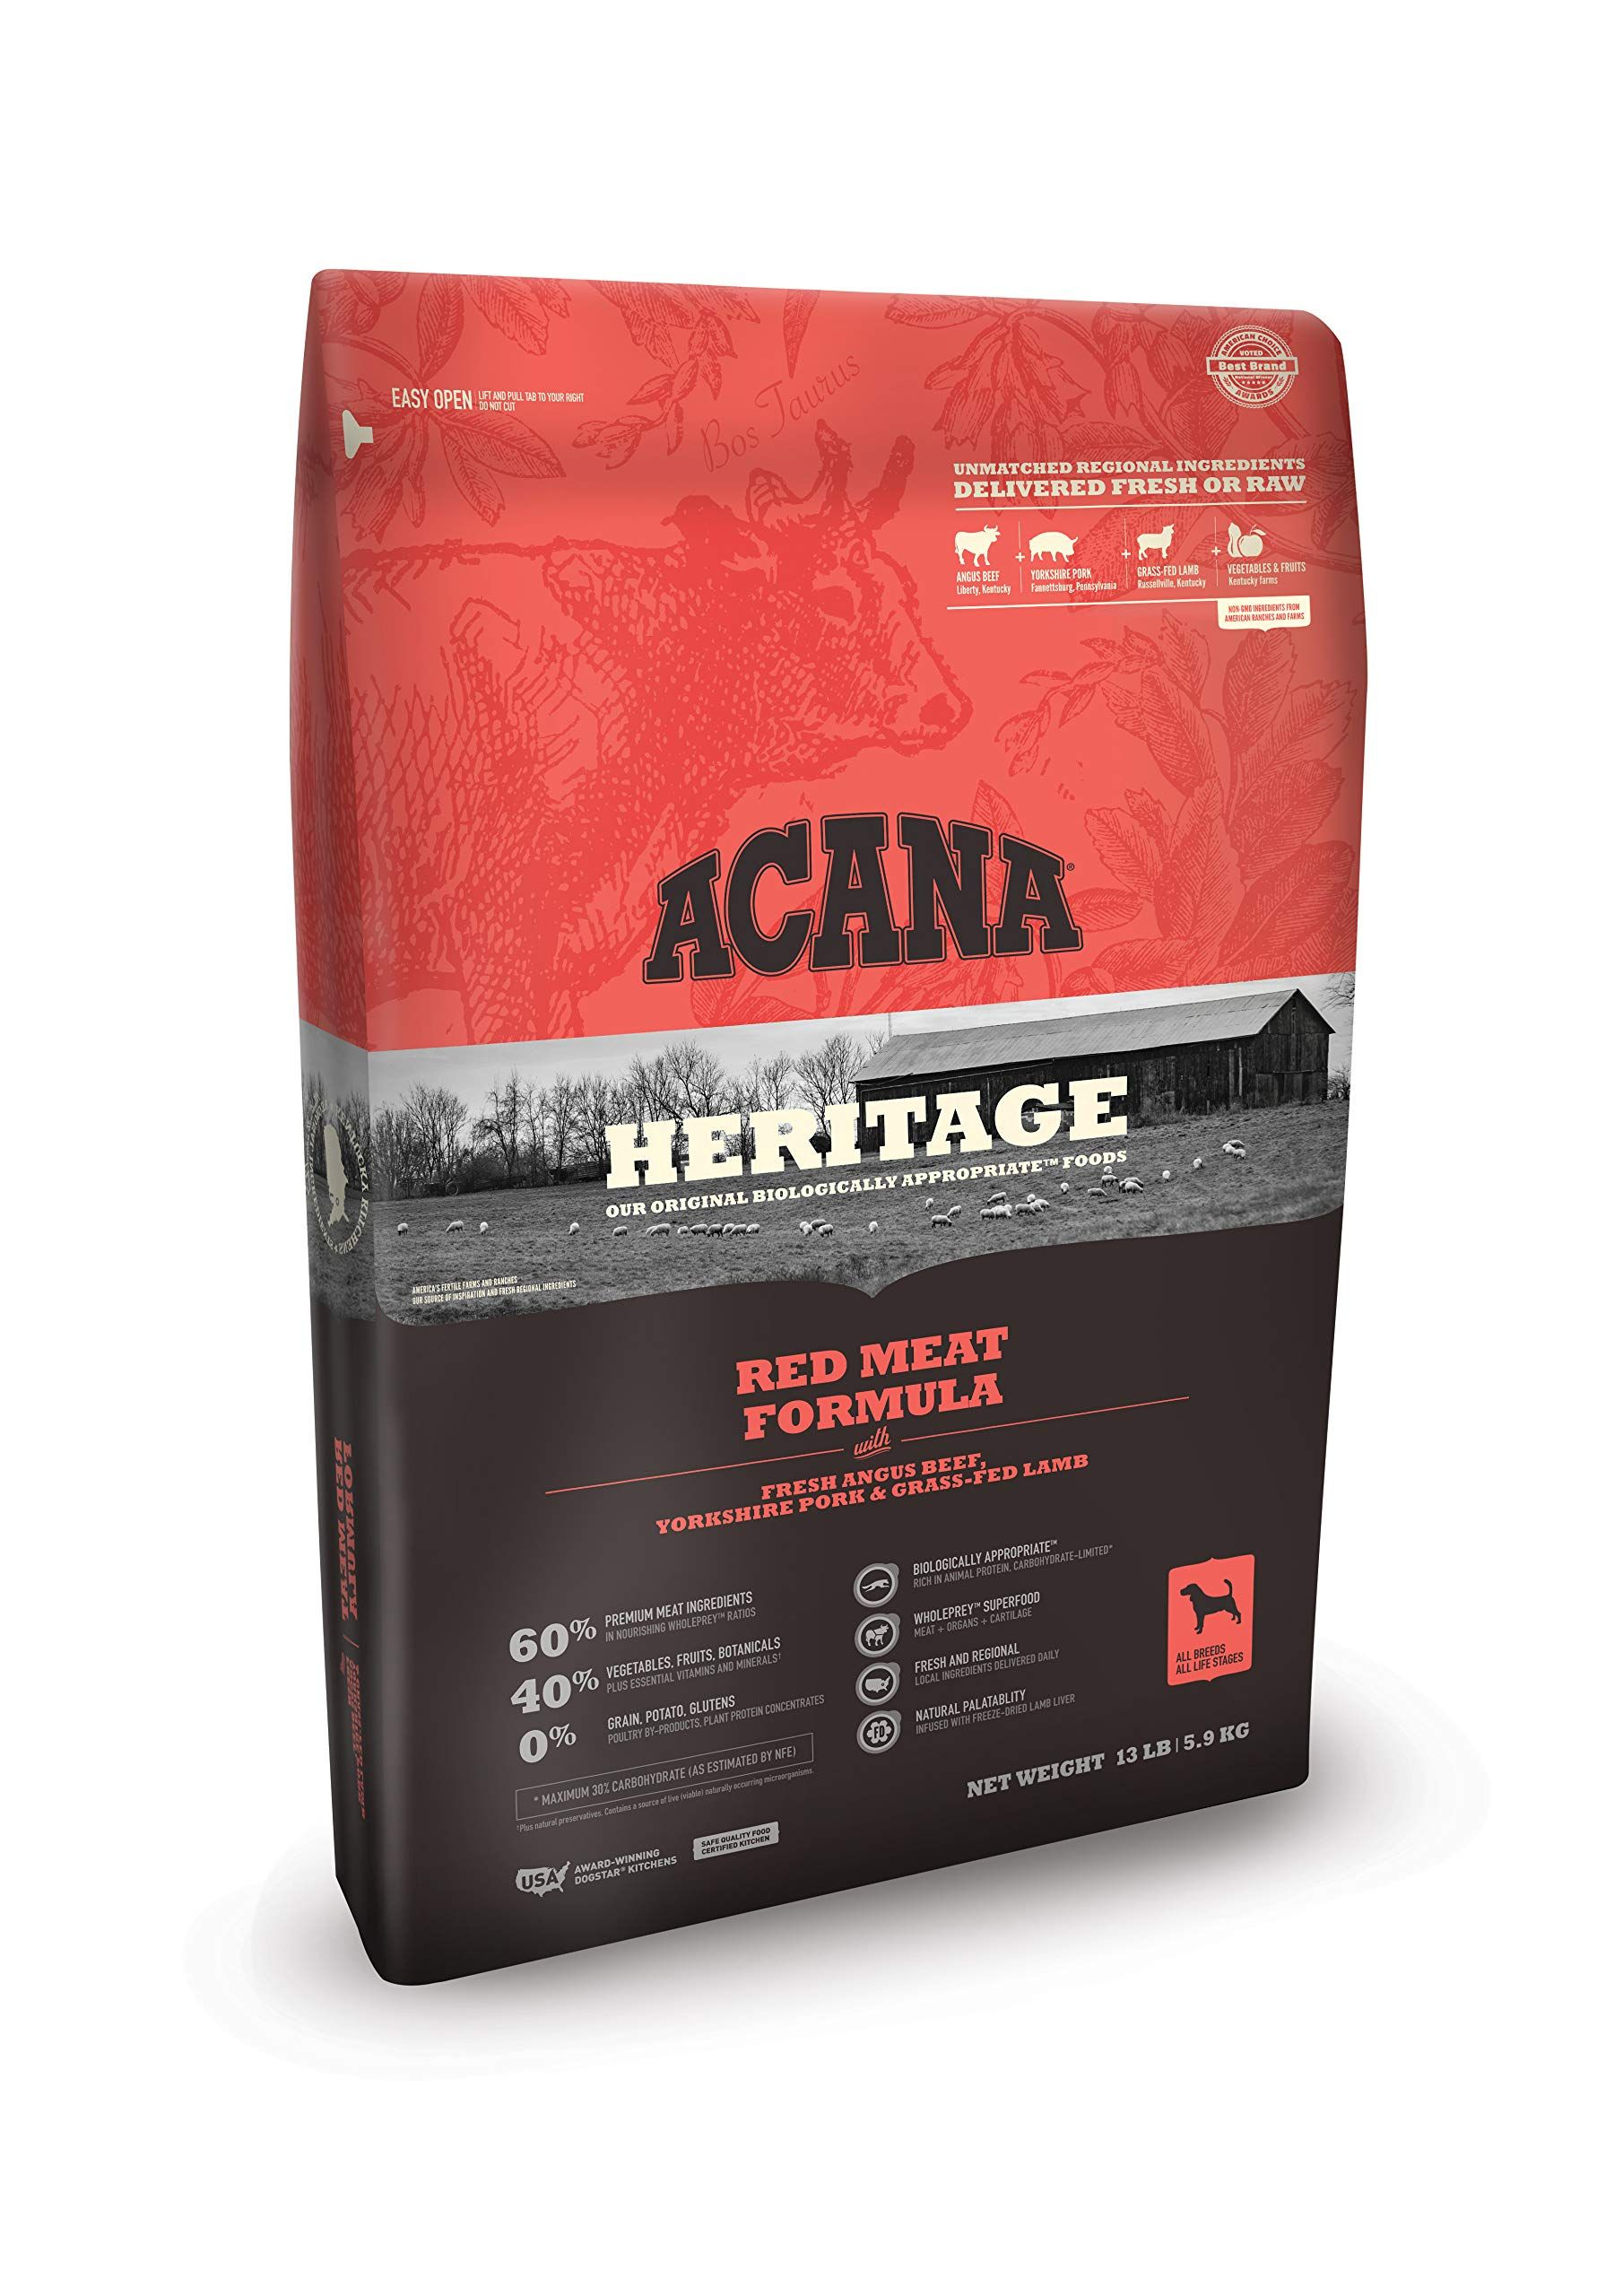 ACANA Heritage Dry Dog Food, Red Meat, Biologically